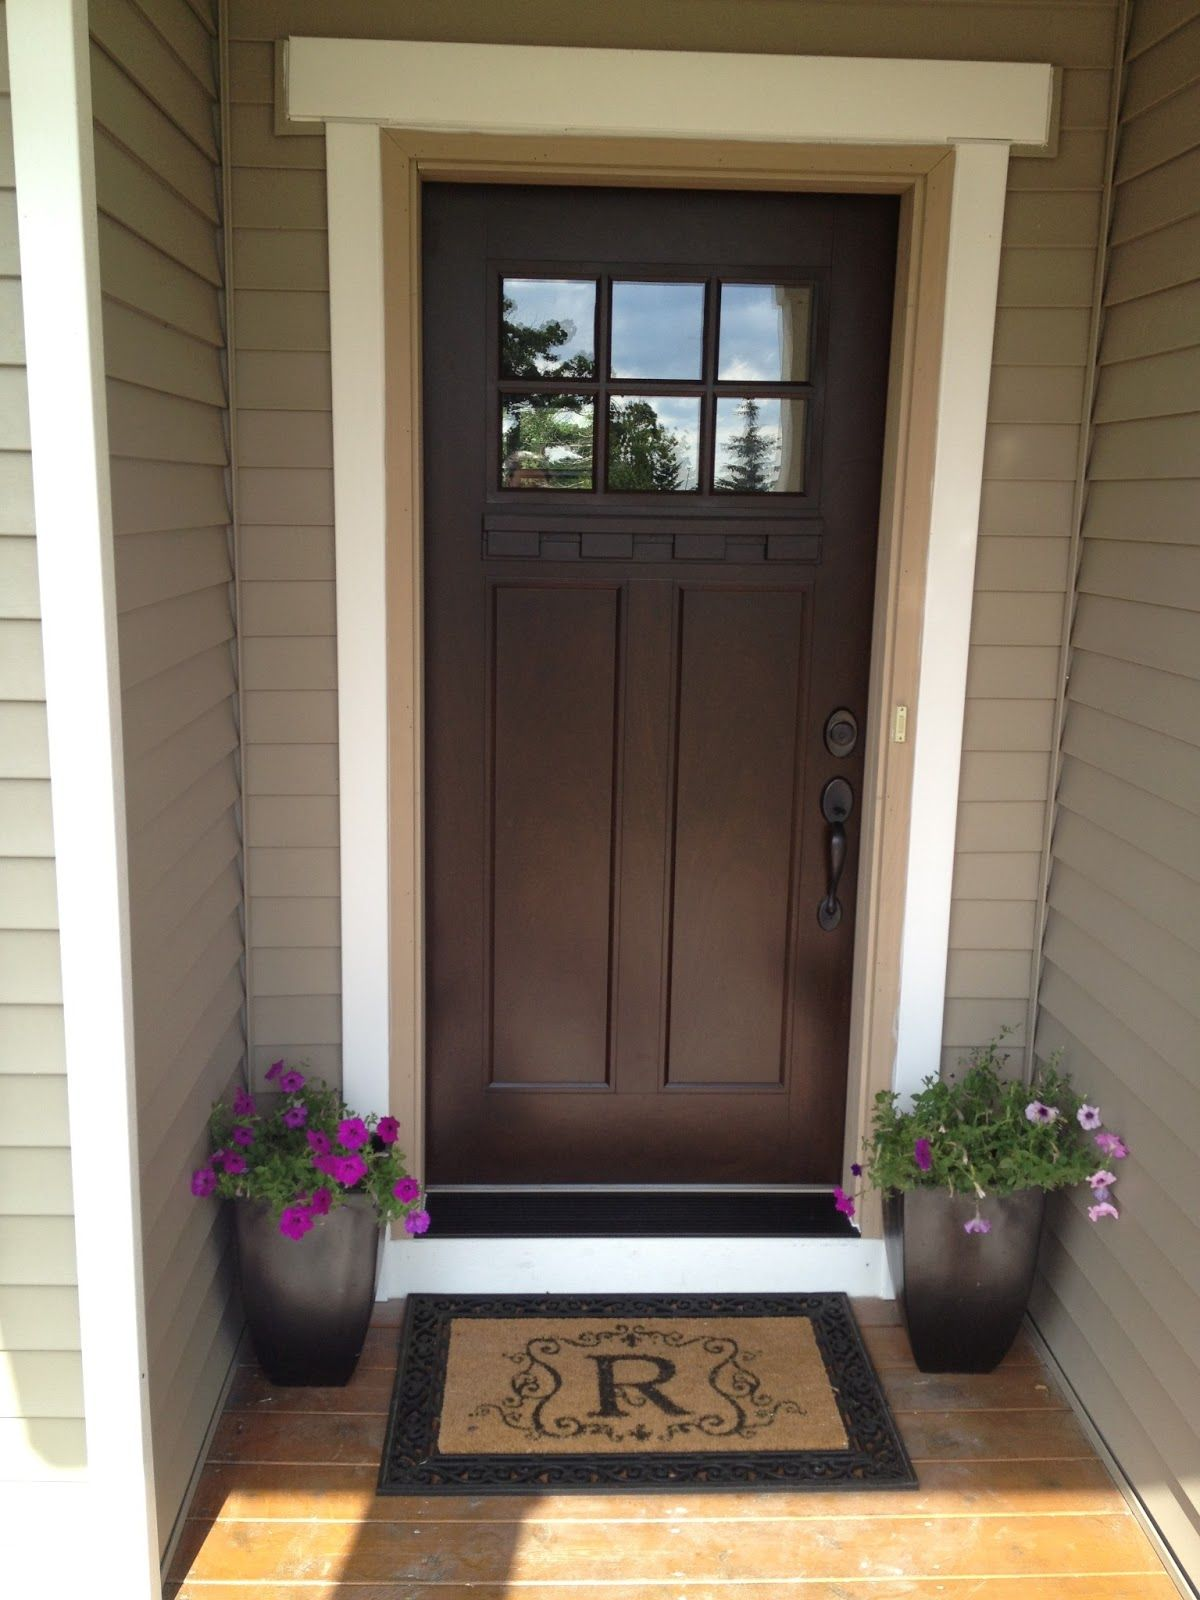 We can paint our front door chestnut and then add a new screen